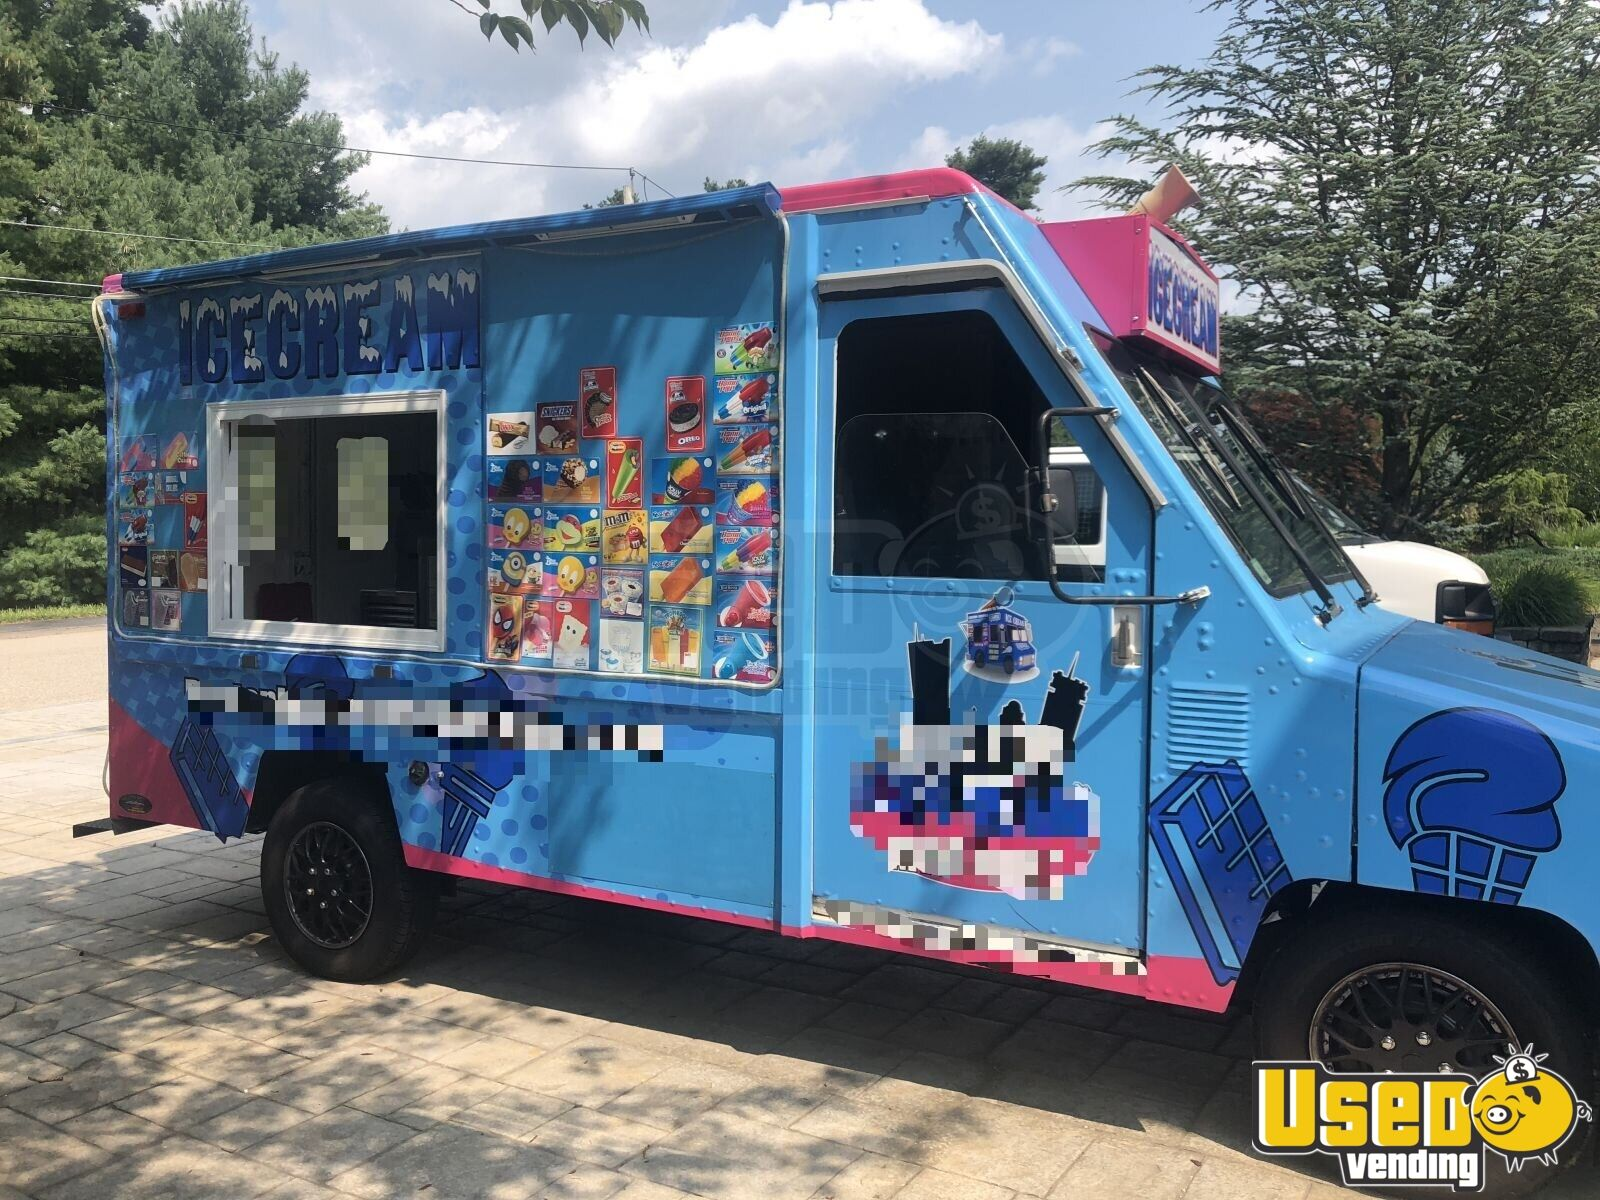 1992 Umc Ice Cream Truck Concession Window Massachusetts Gas Engine for Sale - 2